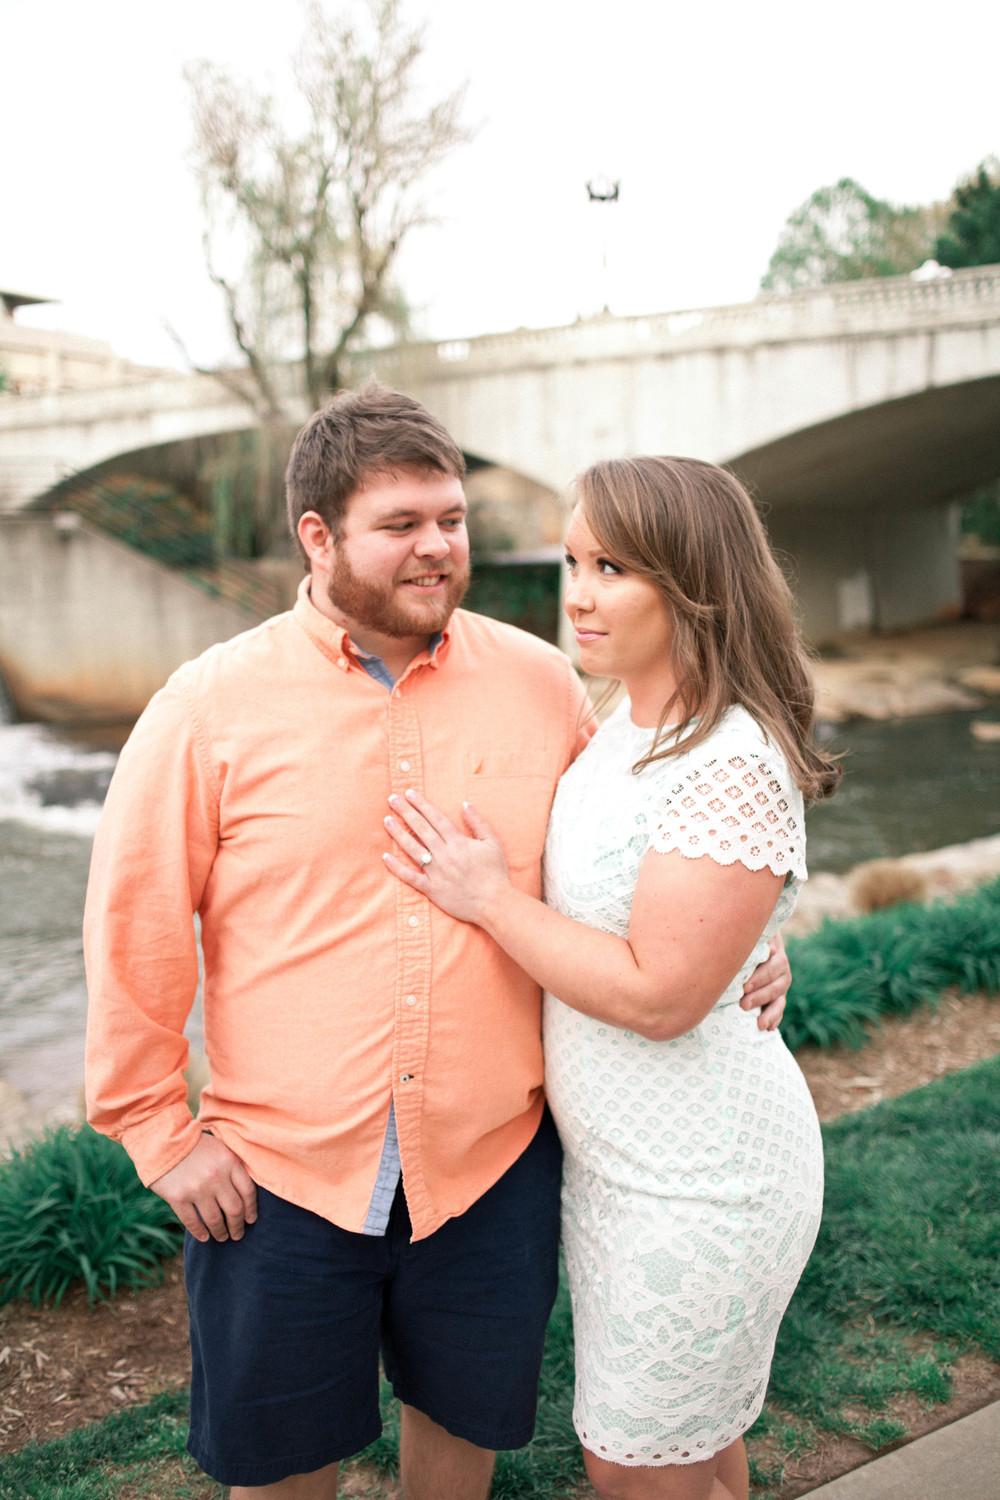 zach_gabbie_engagement_poured_out_photography-11.jpg